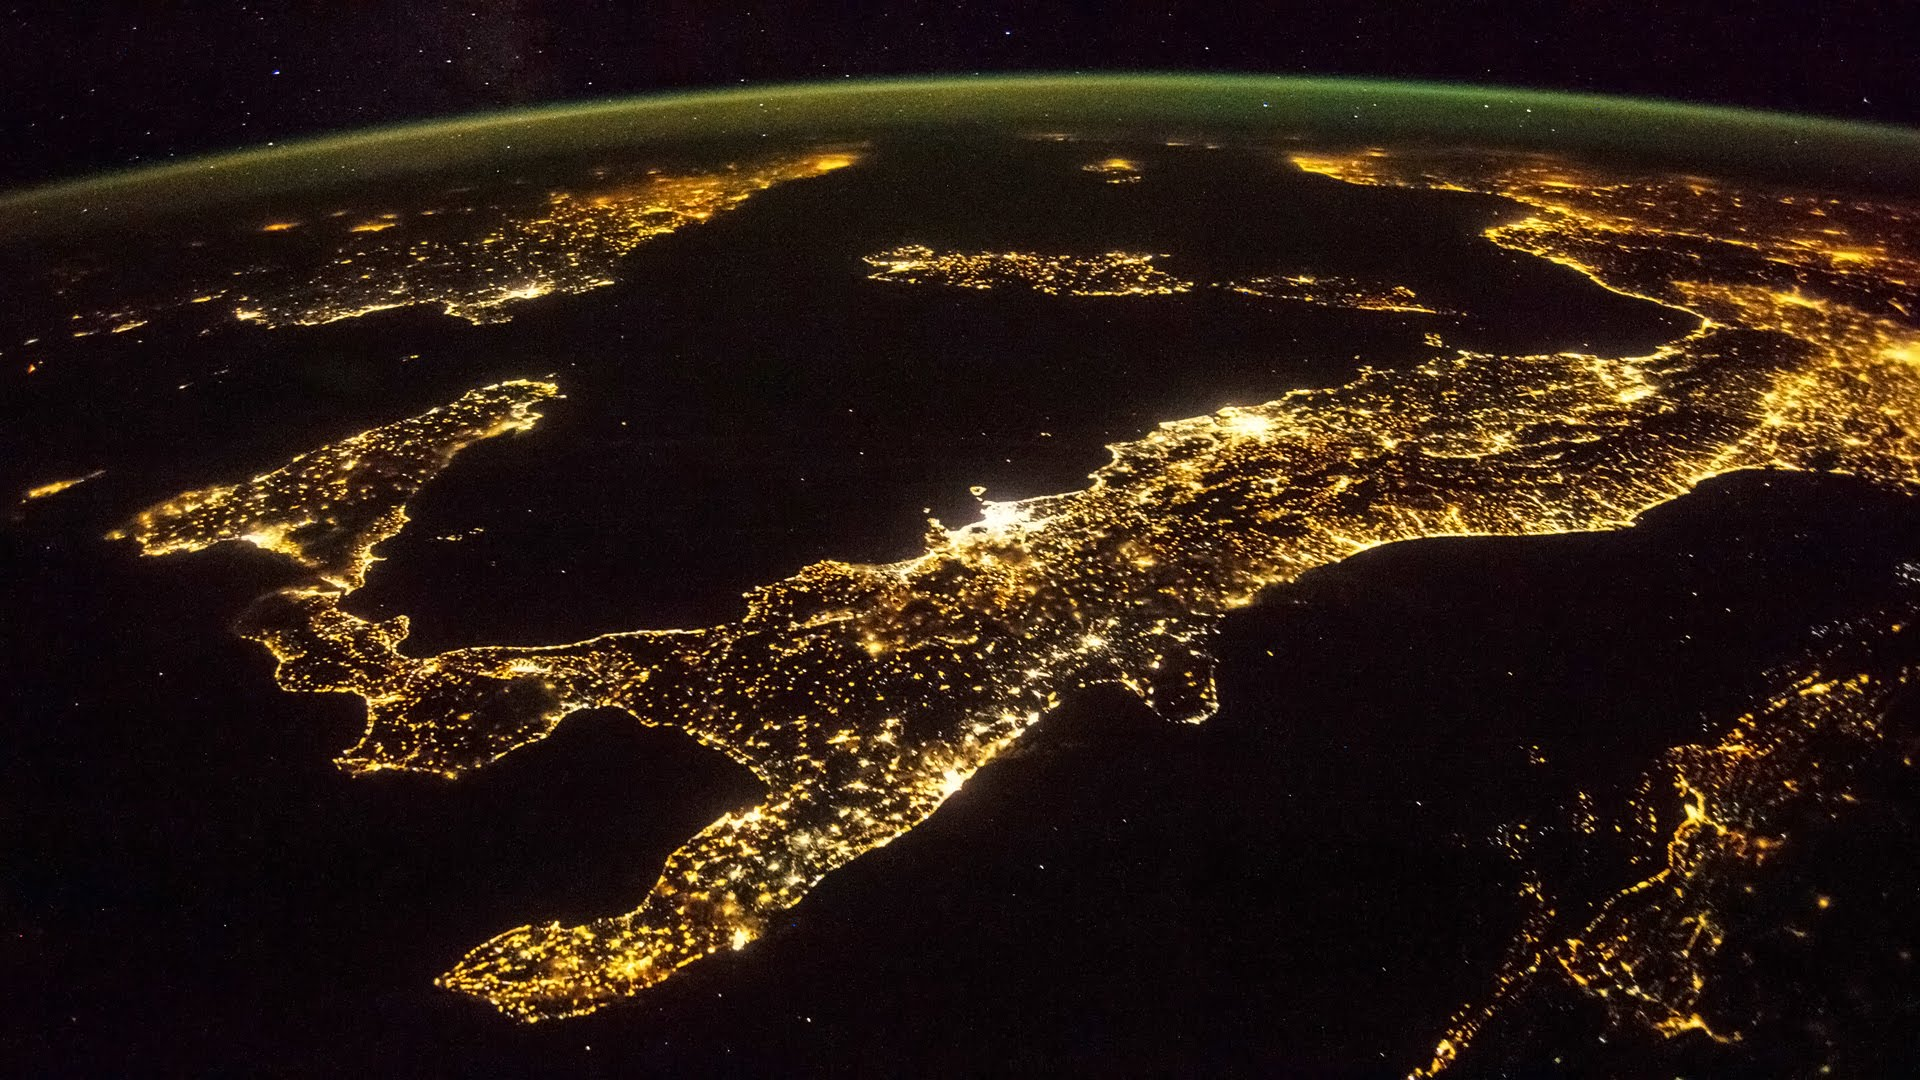 italy from space at night, with millions of lights shining